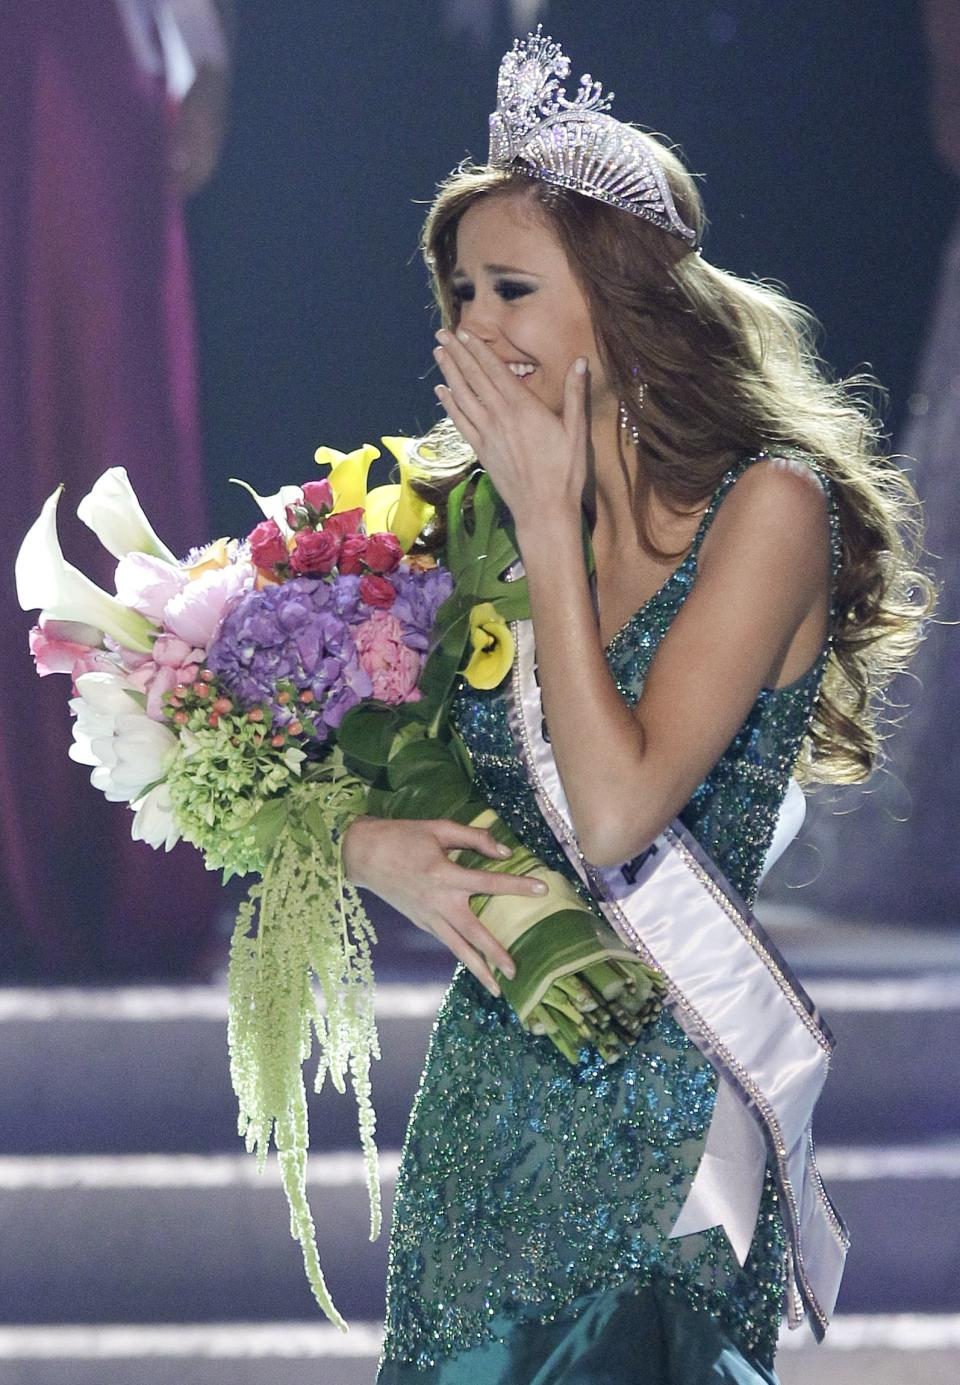 Alyssa Campanella, Miss California, reacts after being crowned the 2011 Miss USA, Sunday, June 19, 2011, in Las Vegas. (AP Photo/Julie Jacobson)